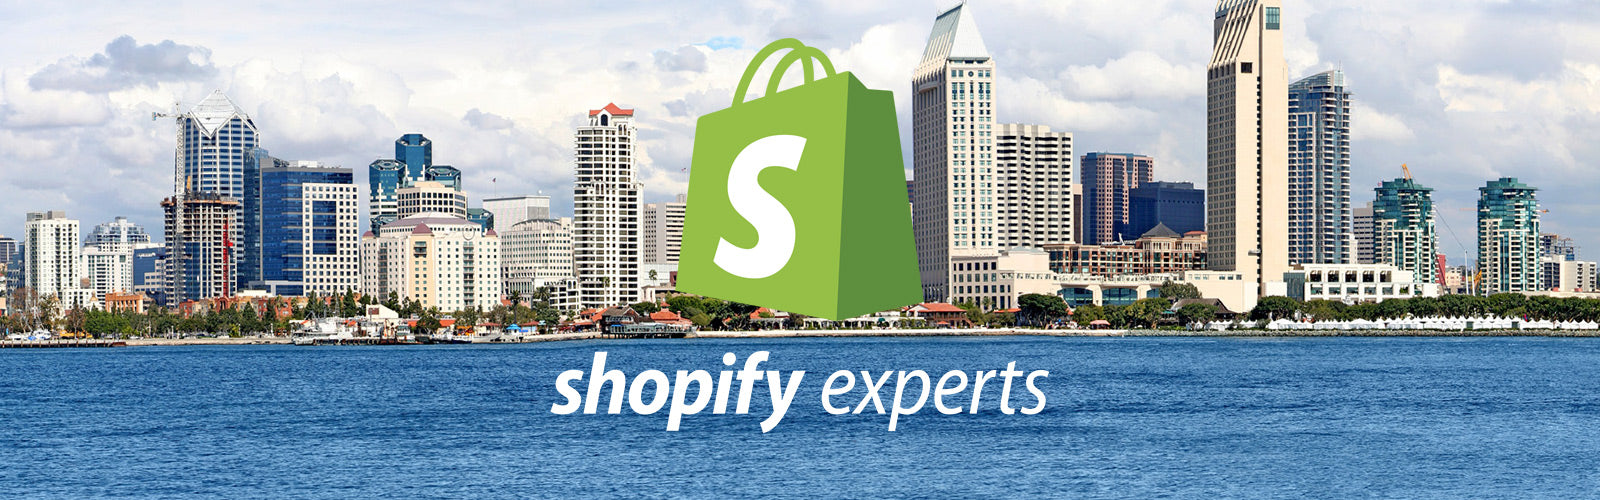 Realm - Shopify Experts San Diego Shopify Expert Los Angeles, Shopify Expert San Francisco